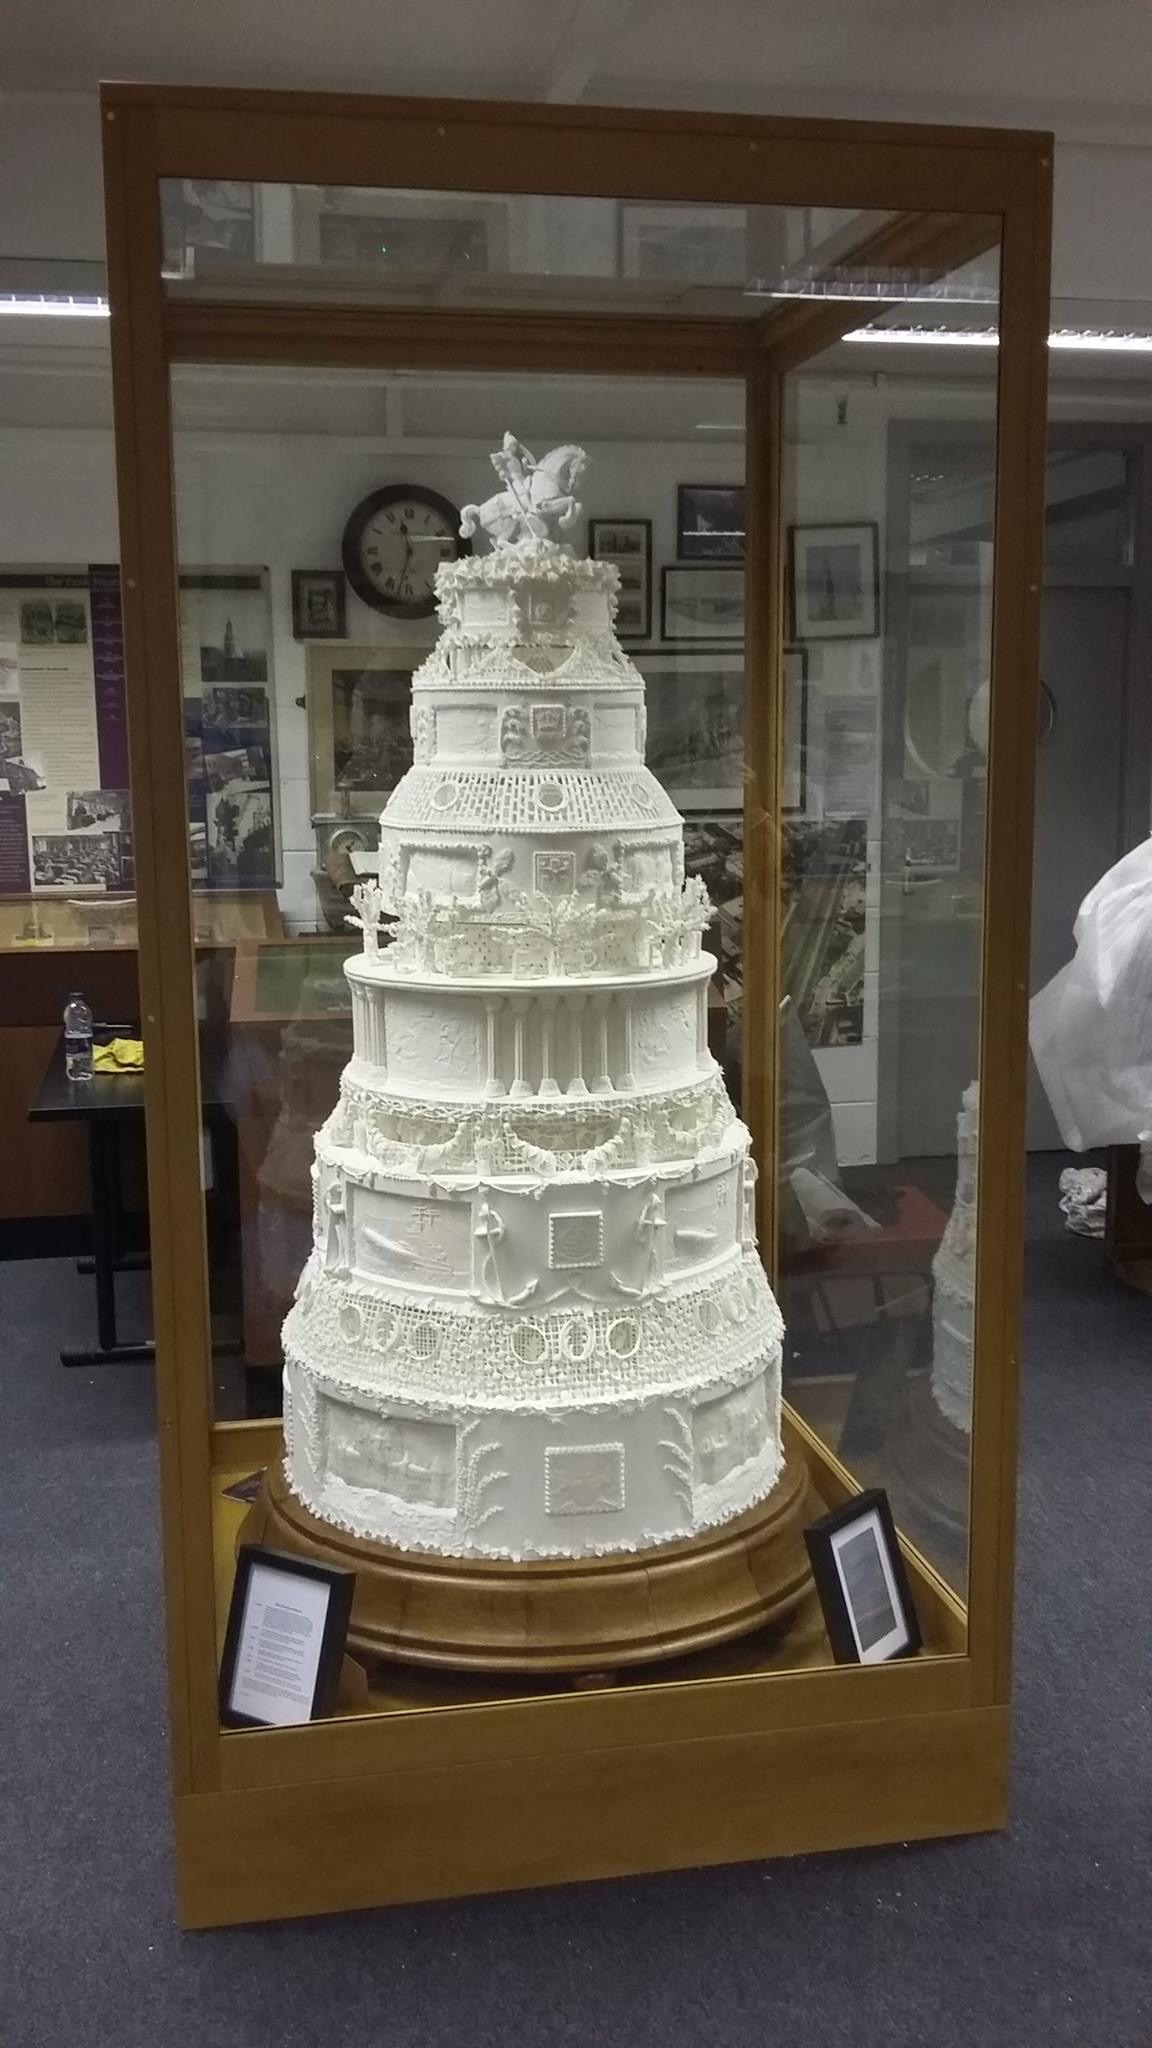 The Queen's Wedding Cake